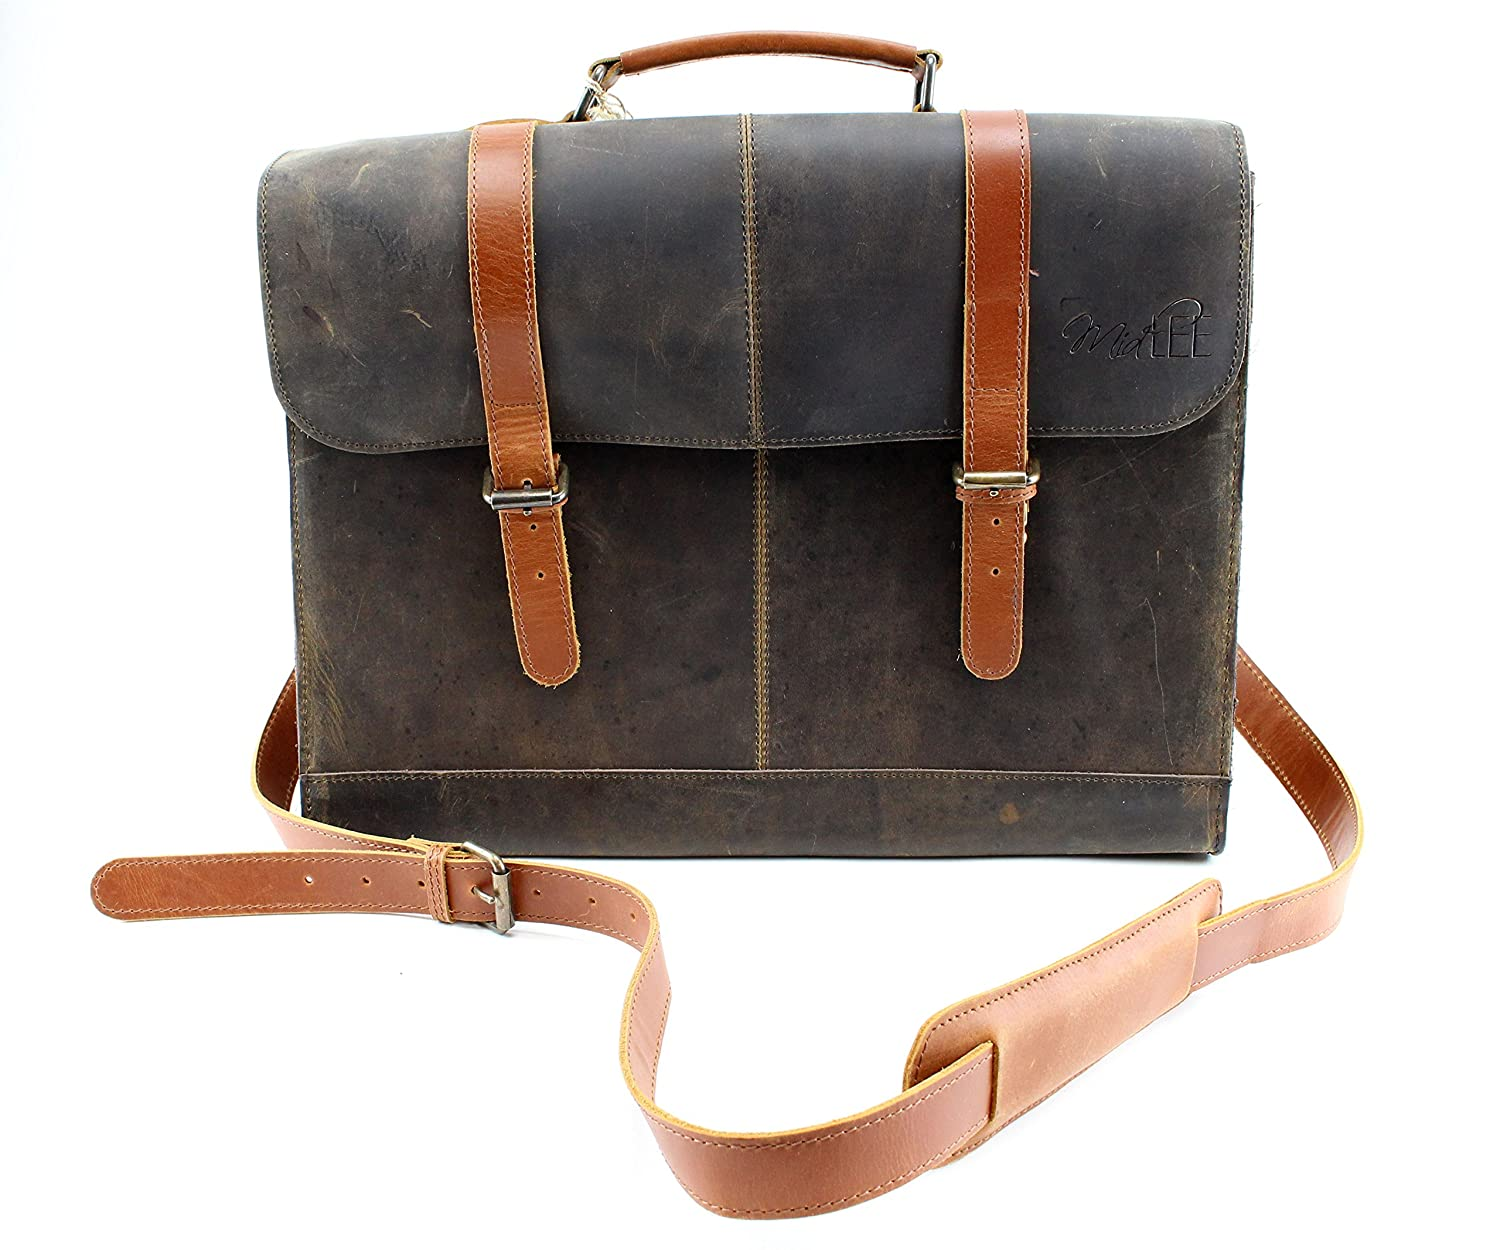 Midlee Distressed Leather Dog Carrier